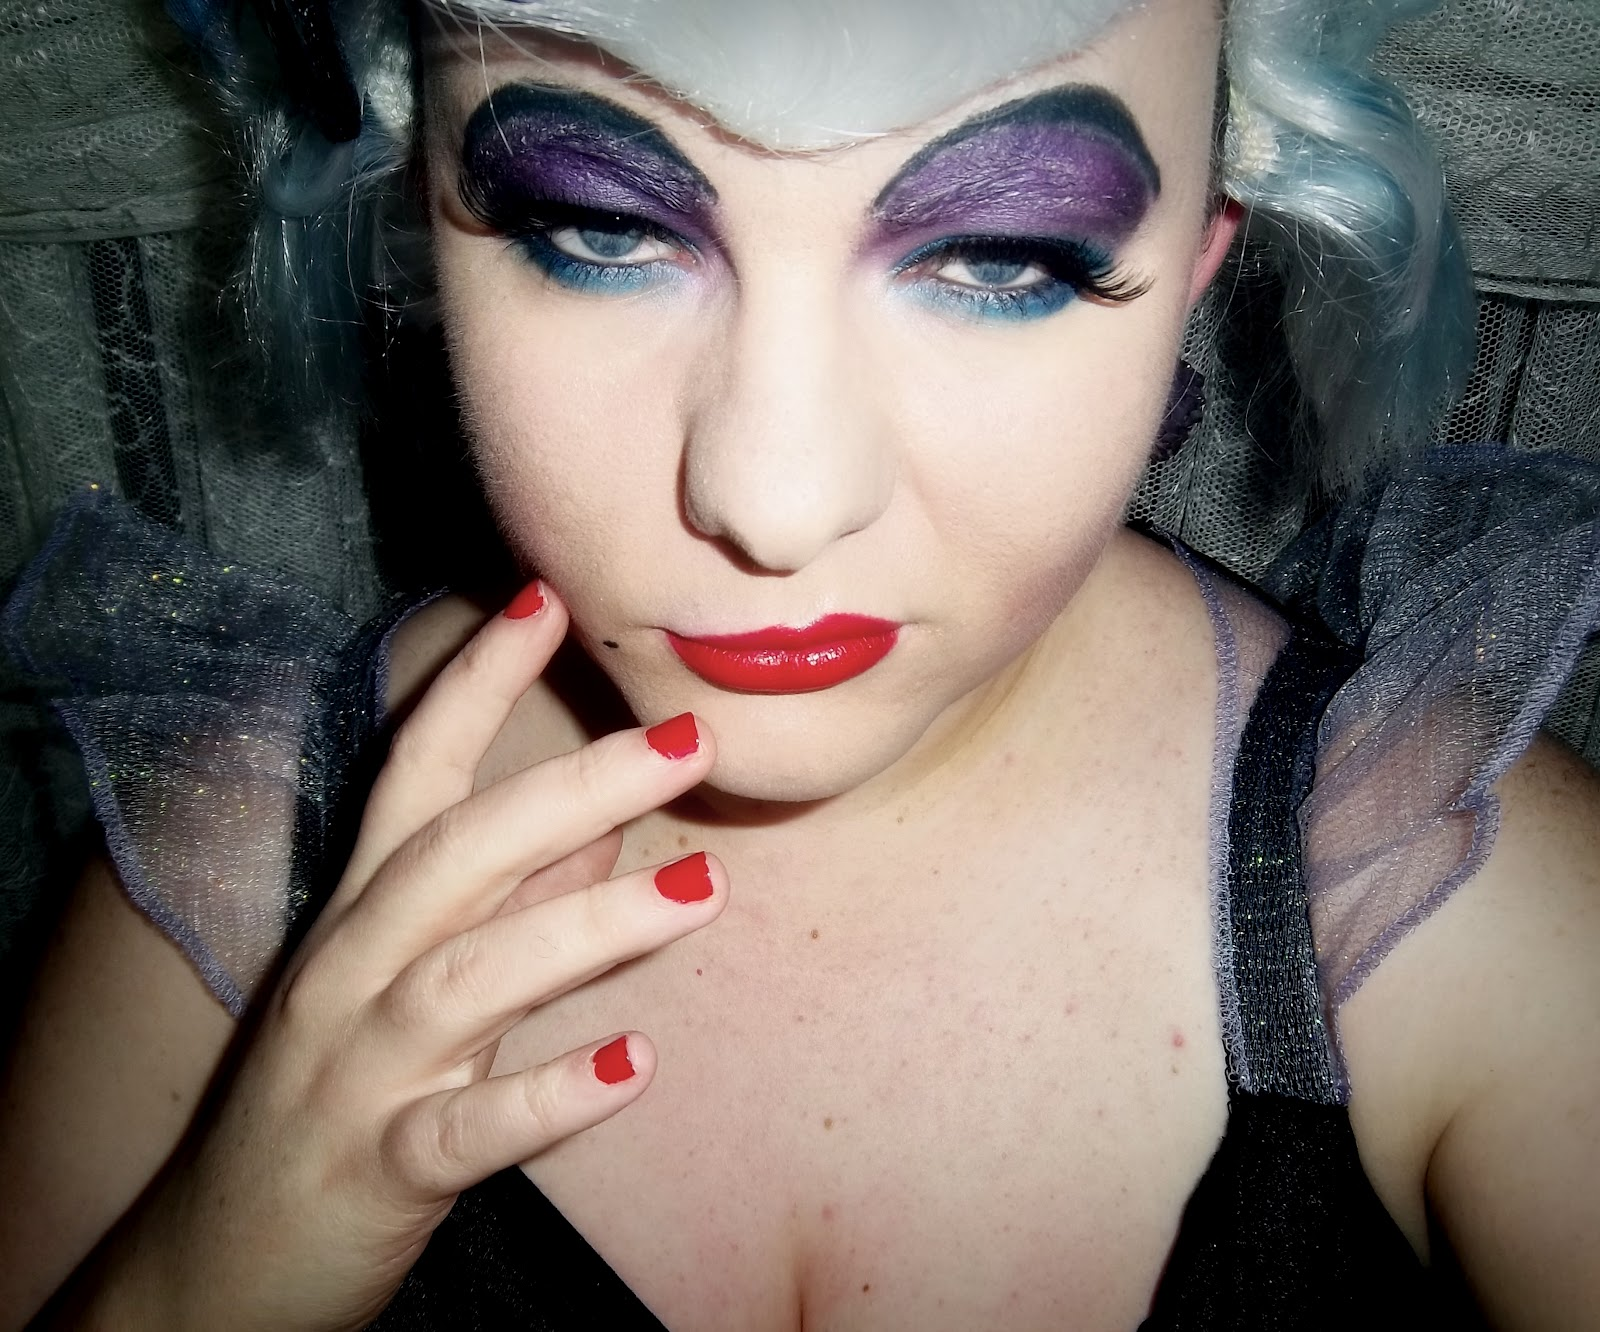 TUTORIAL: URSULA Disney Villain from The Little Mermaid Makeup